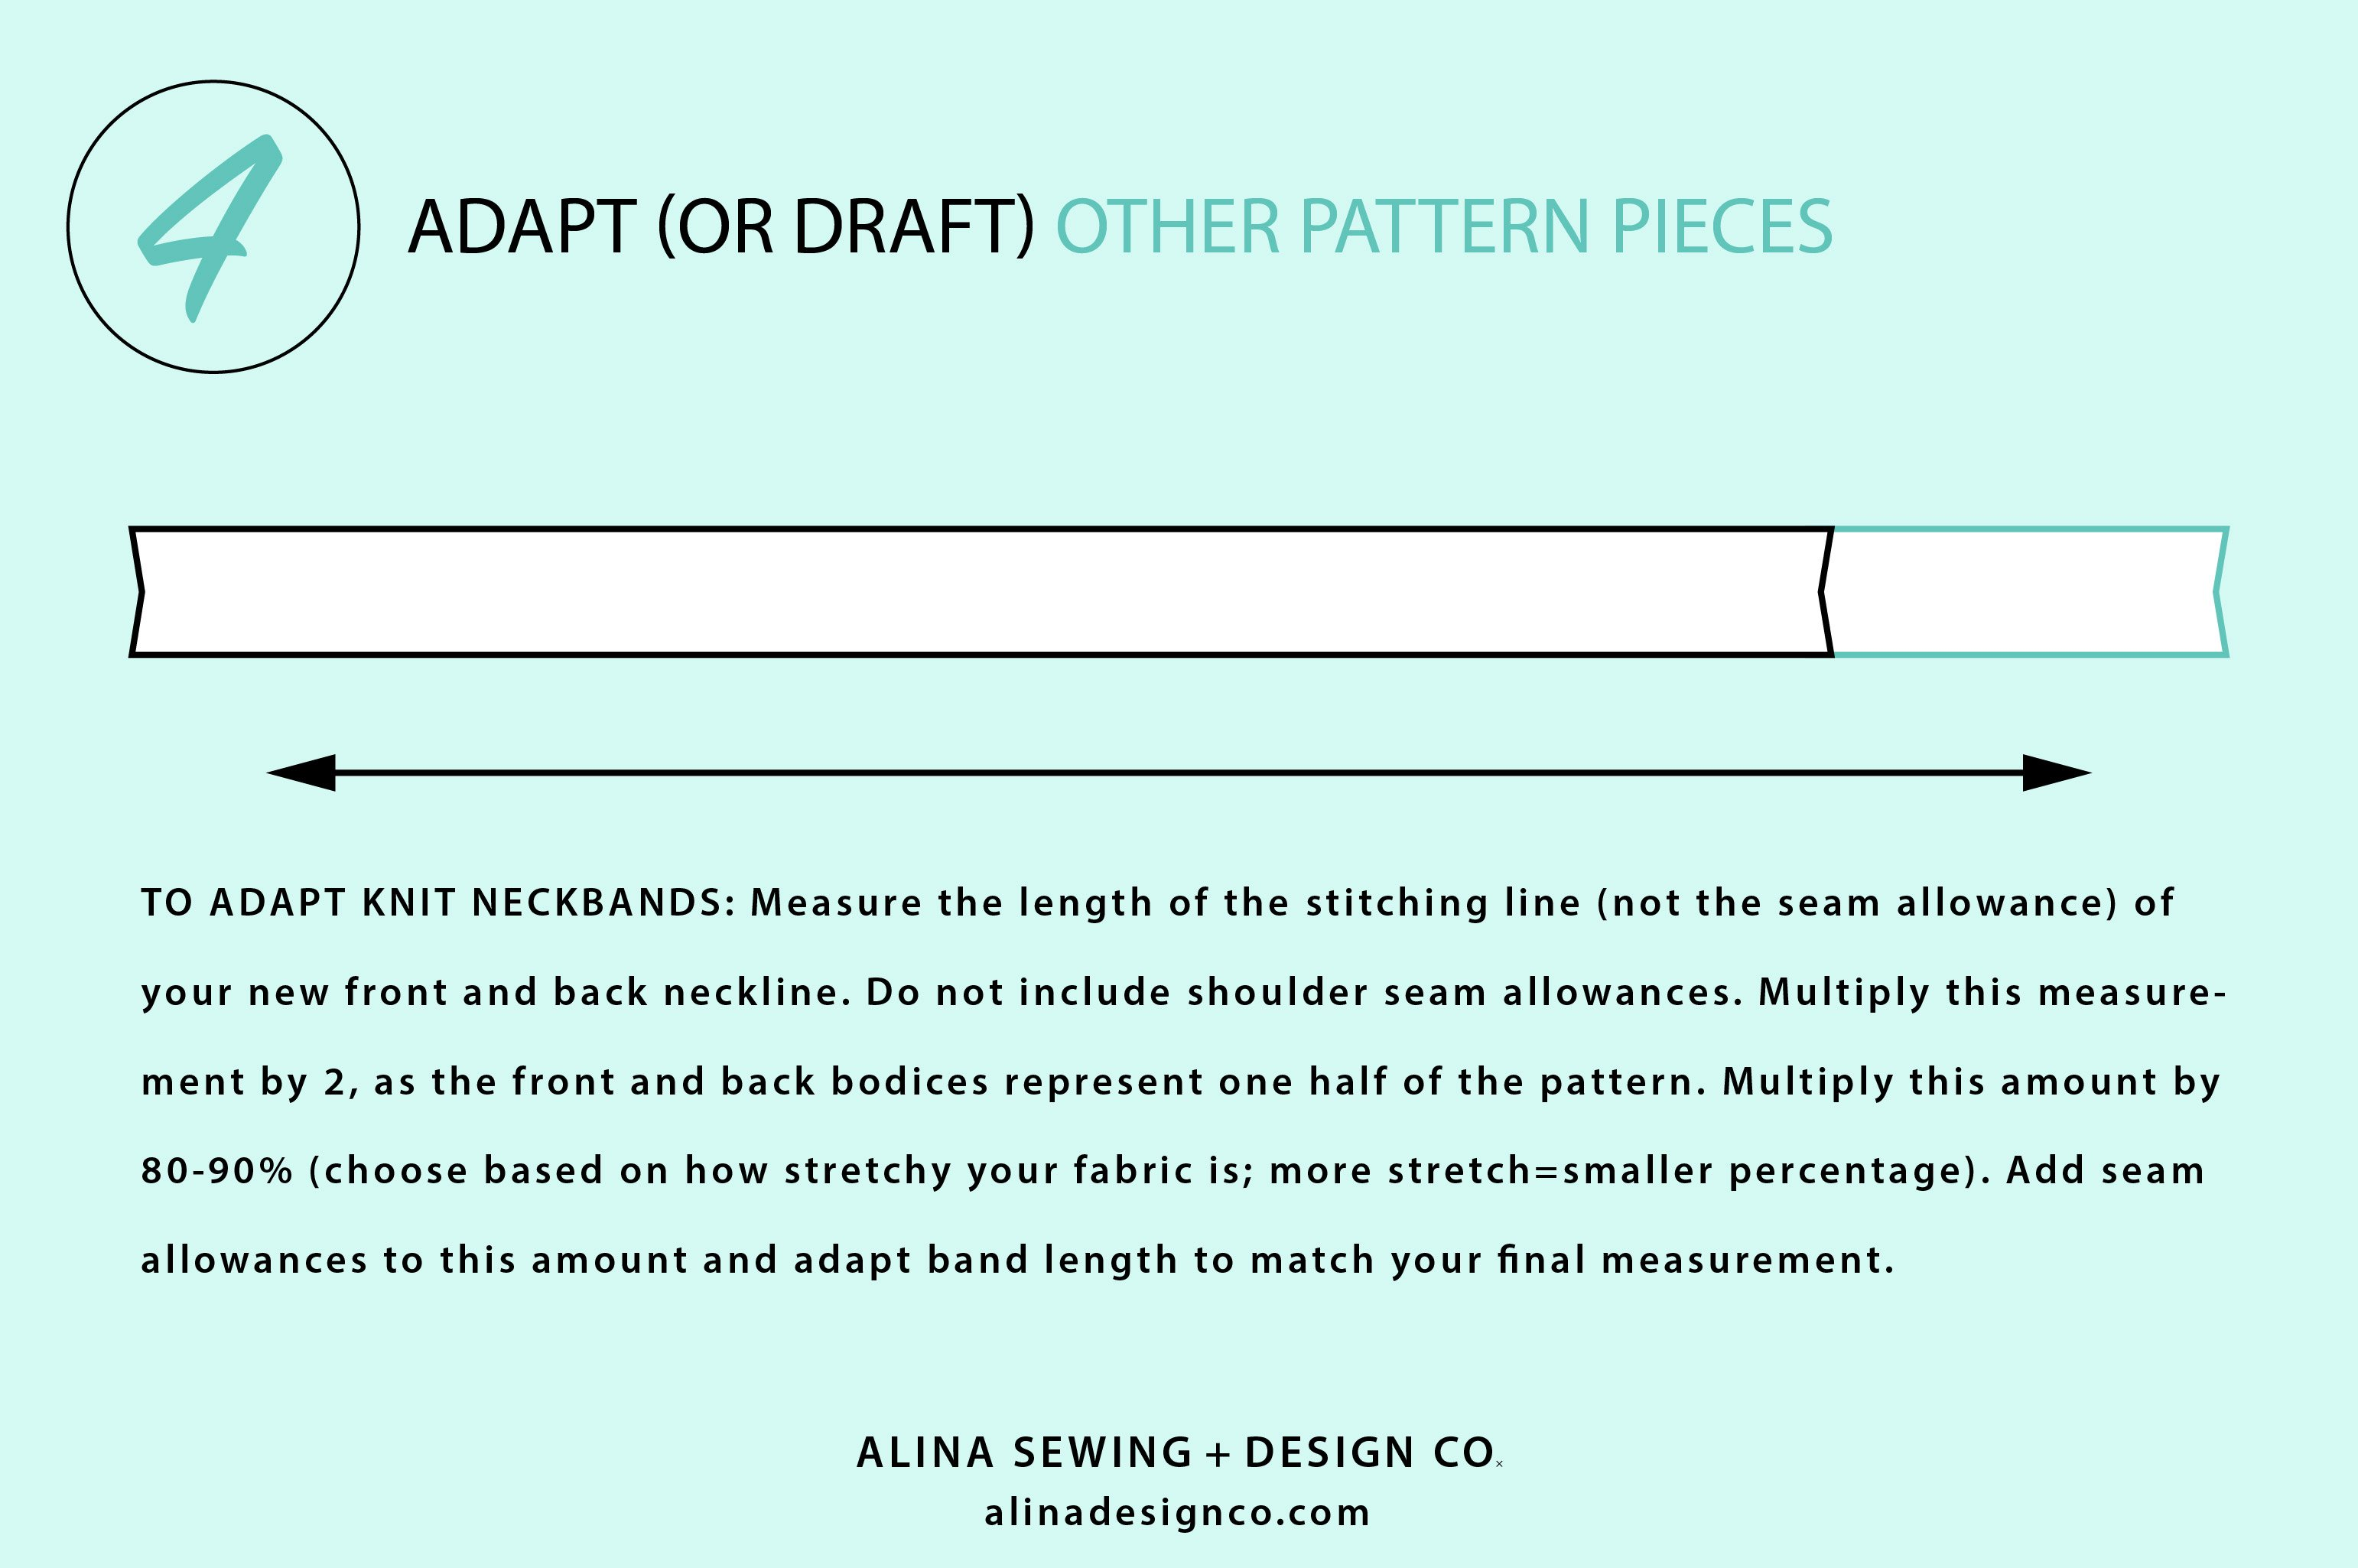 drafting-a-new-neckline-illustrations-04